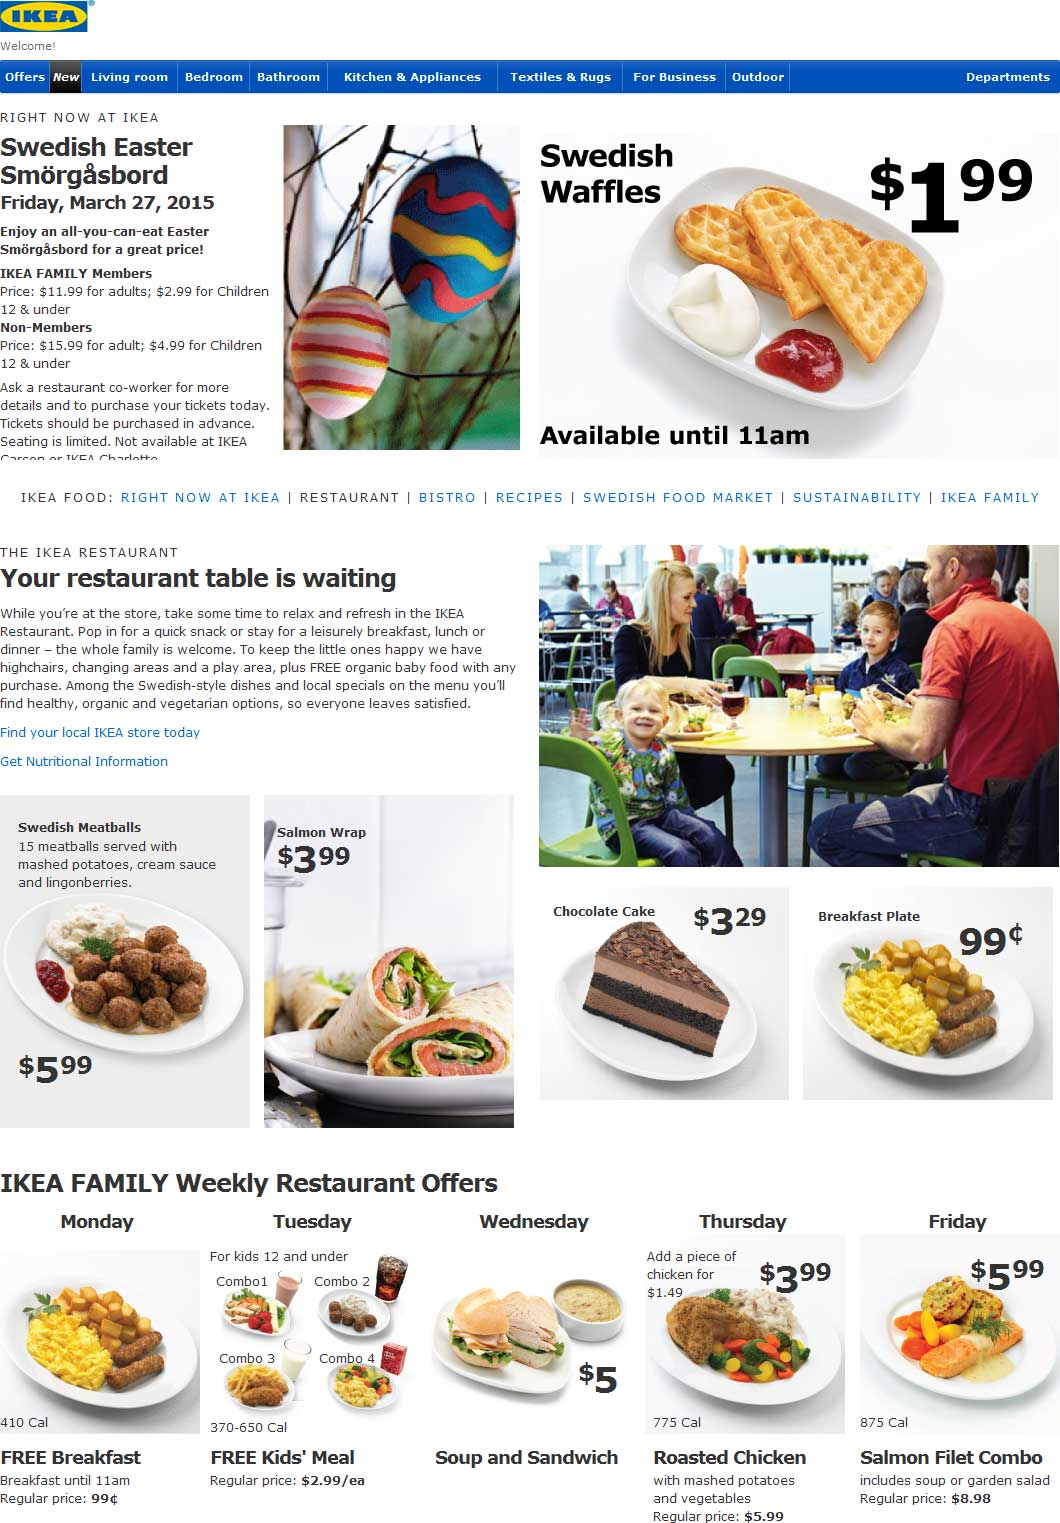 Promo coupon free breakfast monday free kids for Ikea free kids meal